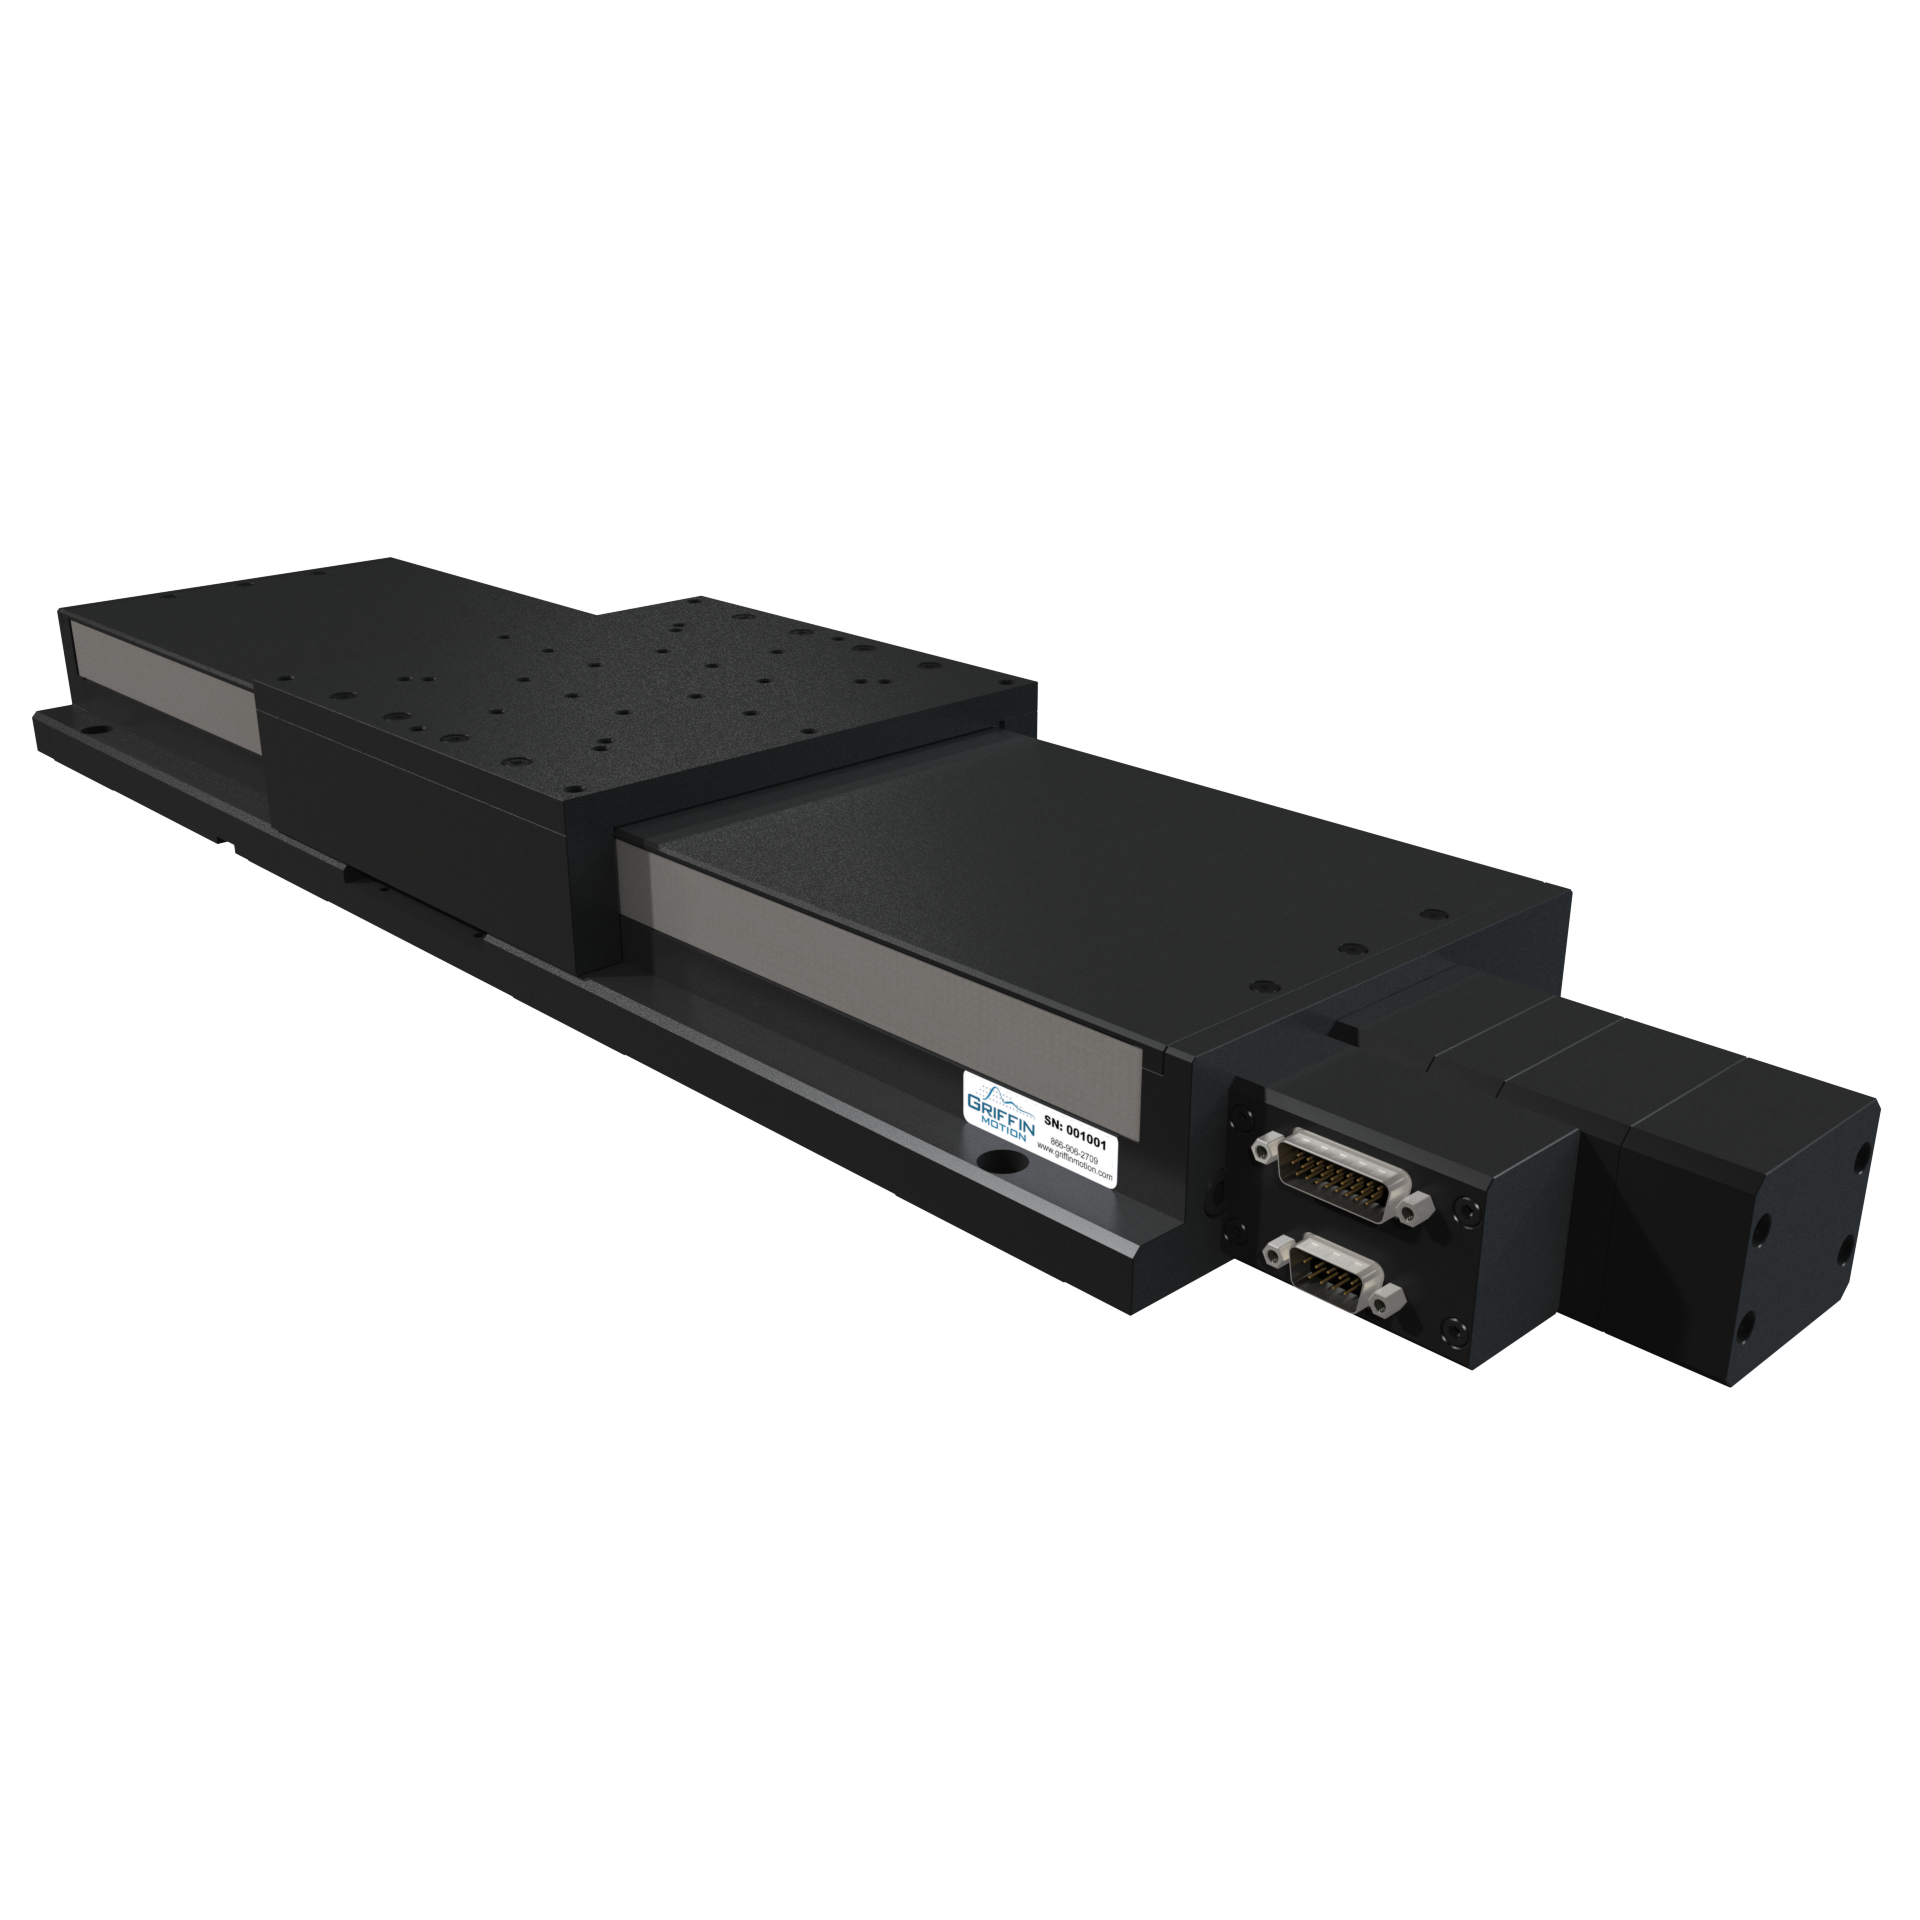 Precision Linear Stage with Brushless Servo Ball Screw Drive, Recirculating Linear Guide Ways, Rotary Encoder, and Side Seals and Brake